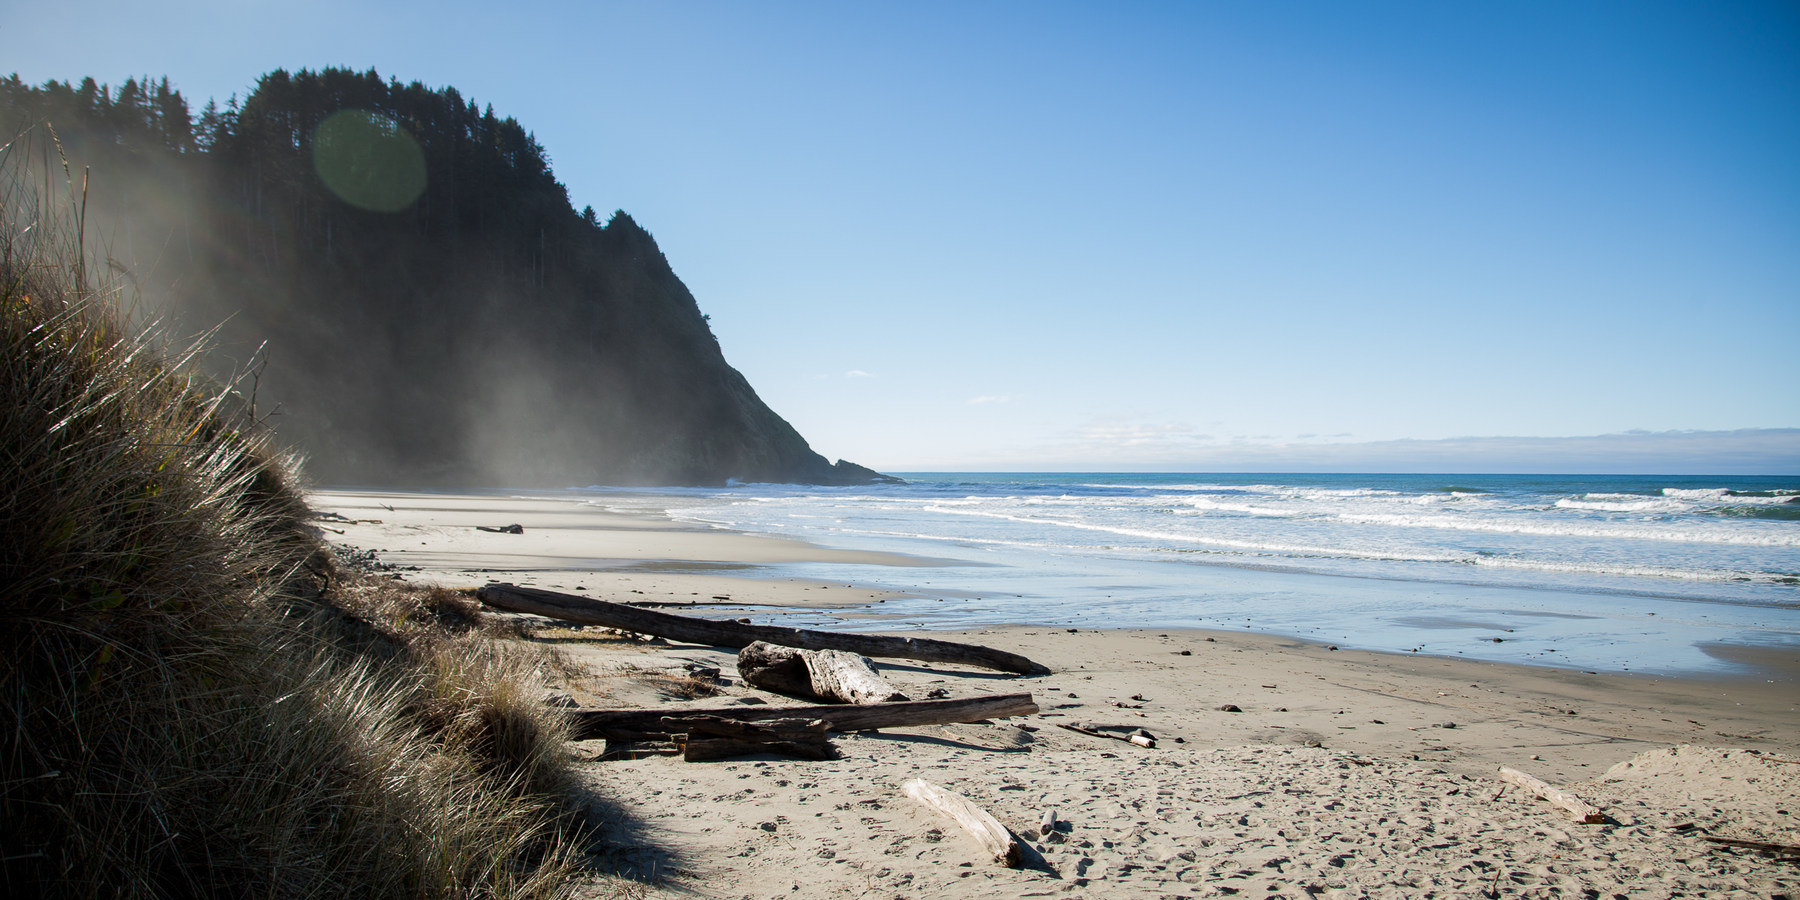 Best Hikes On The Oregon Trail Emerges Onto Beach With Southern Views Of Heceta Head